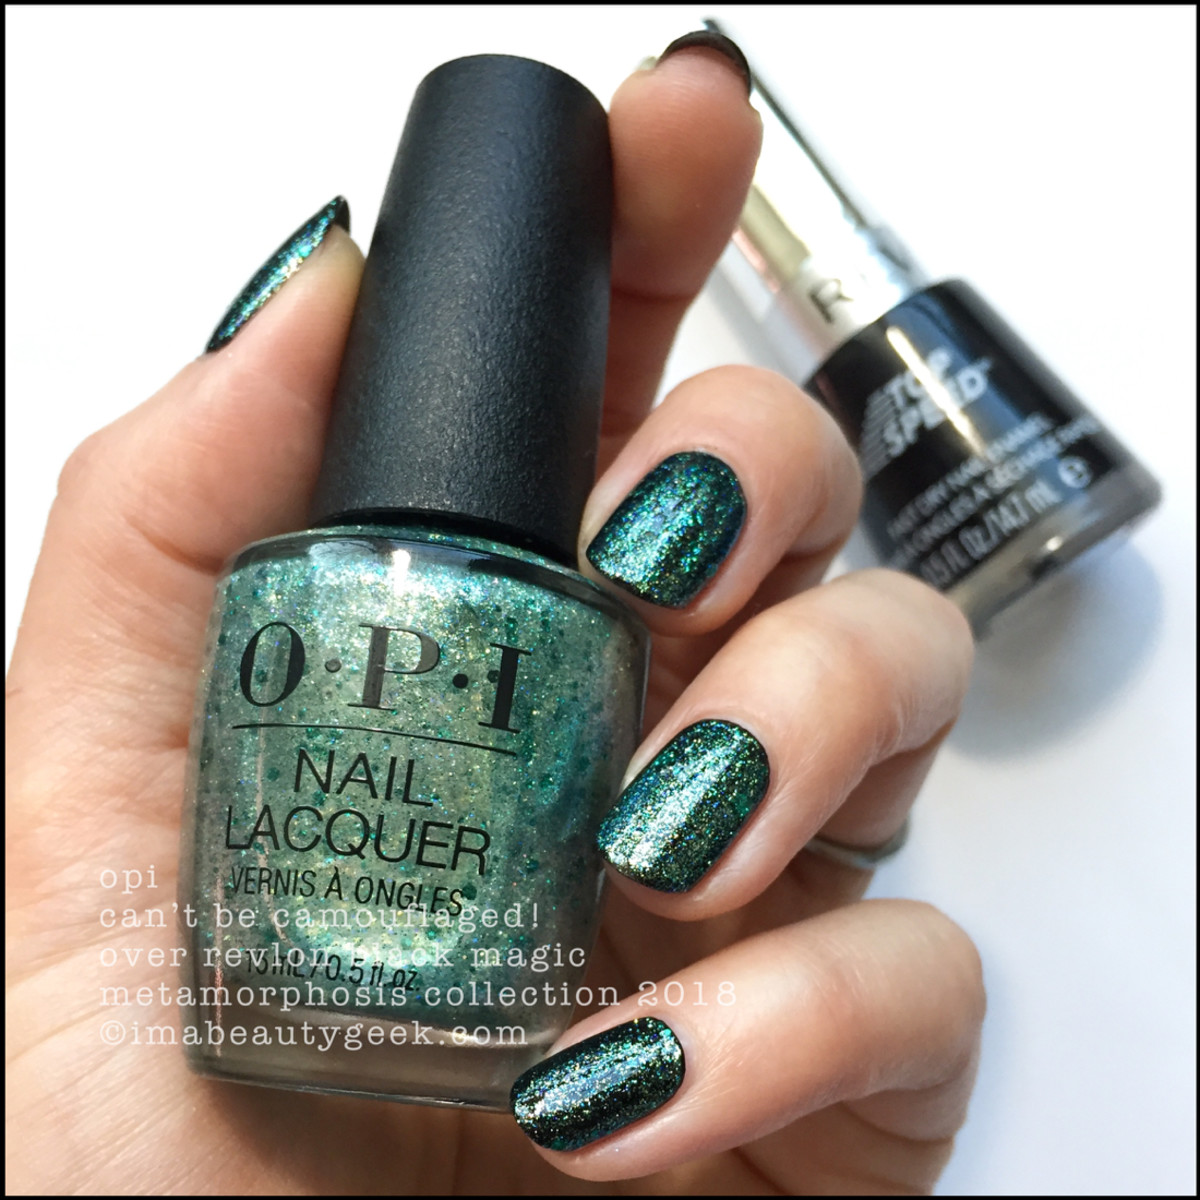 OPI Metamorphosis Collection - OPI Can't Be Camouflaged!